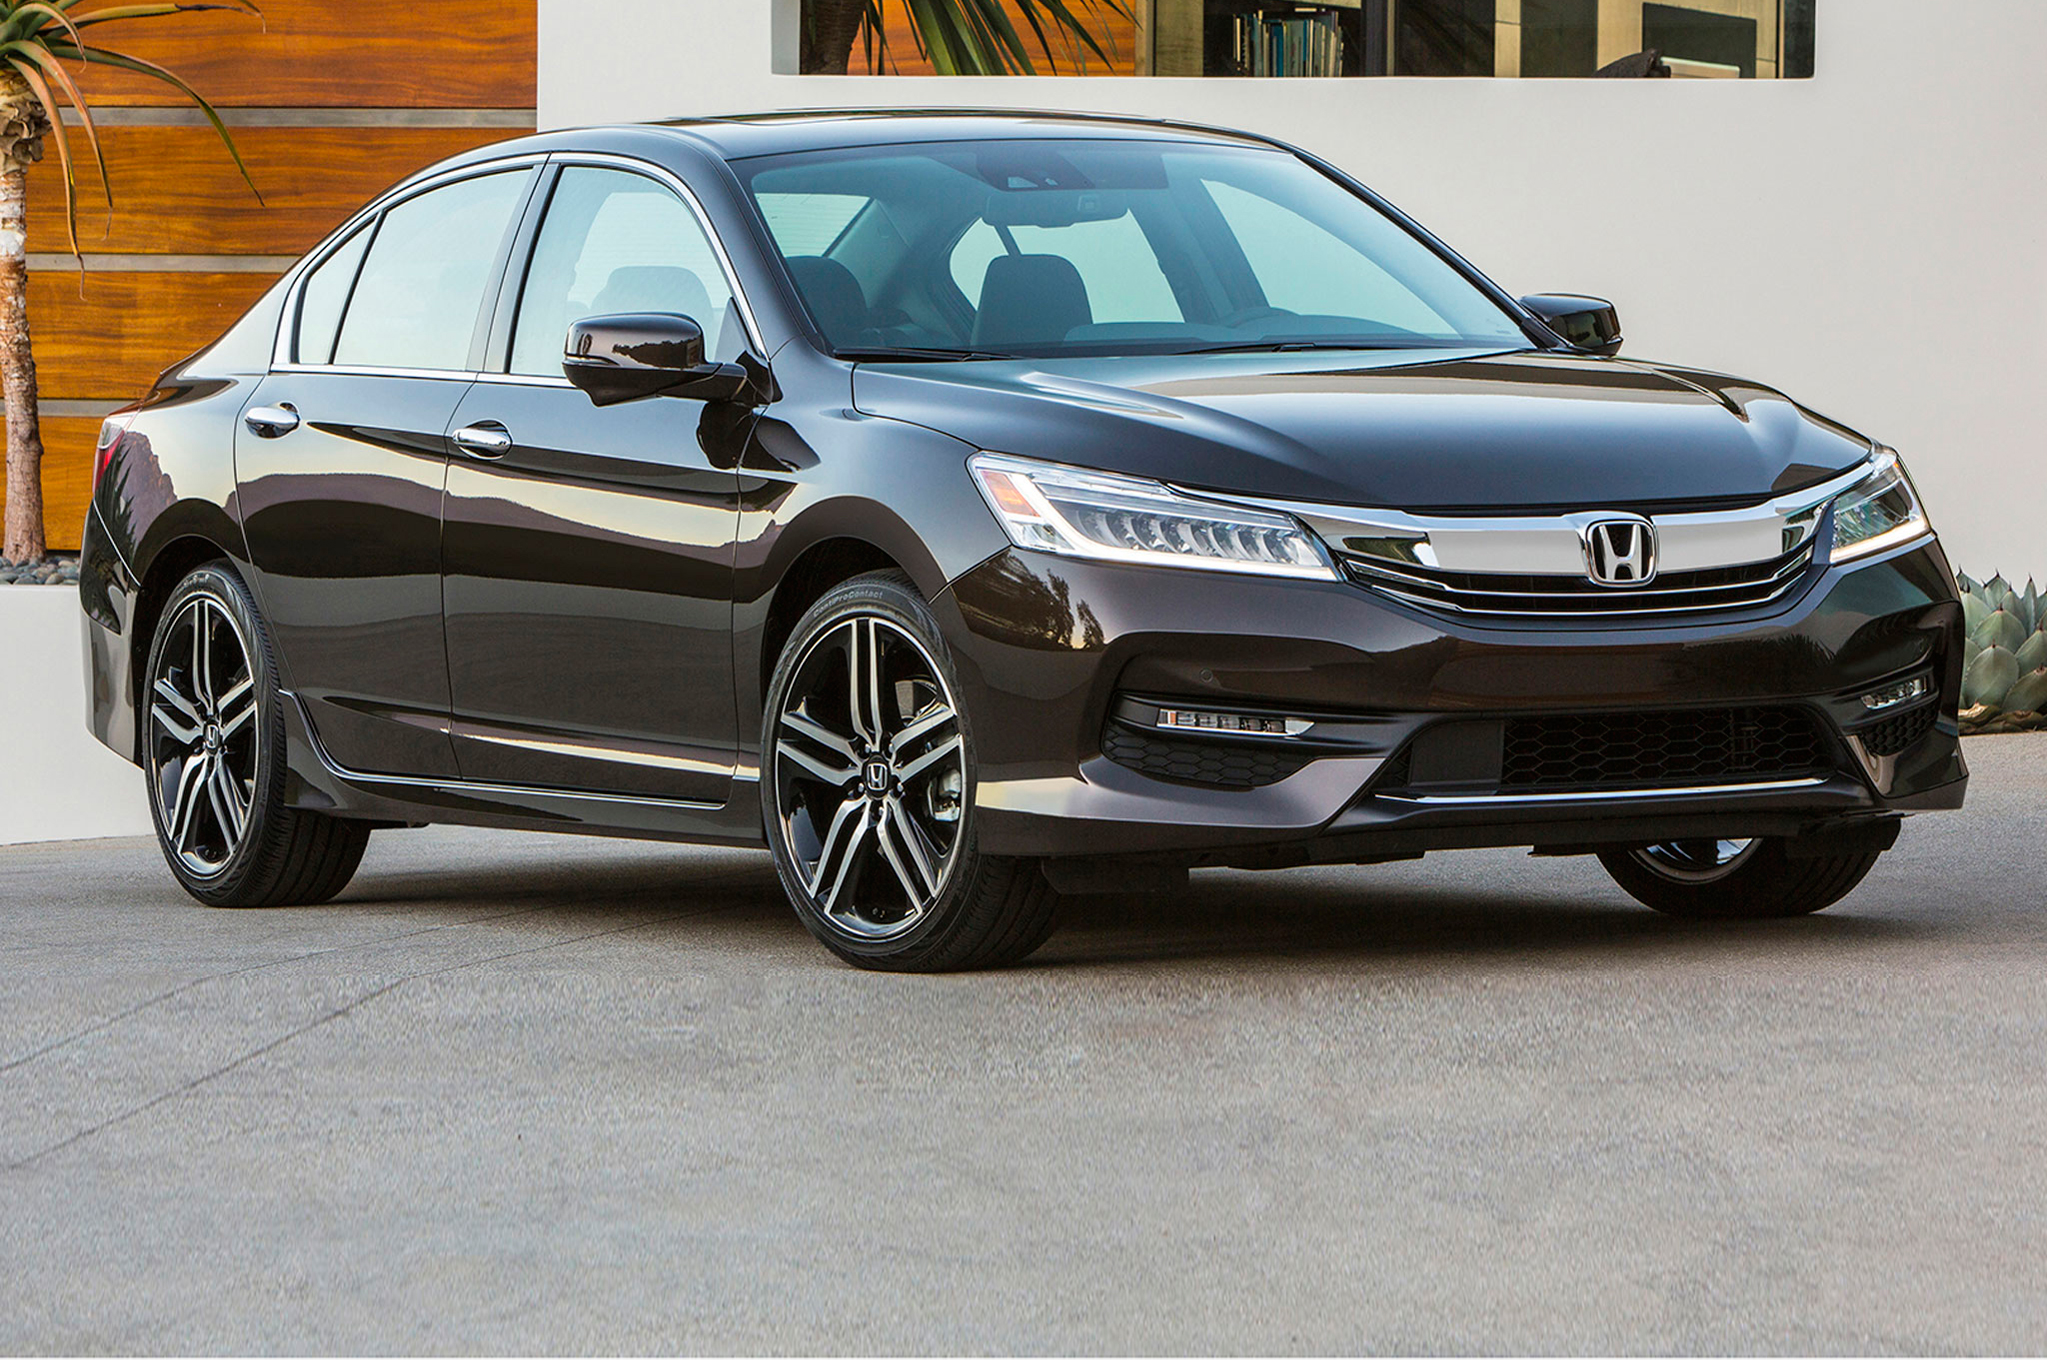 2016 Honda Accord #1